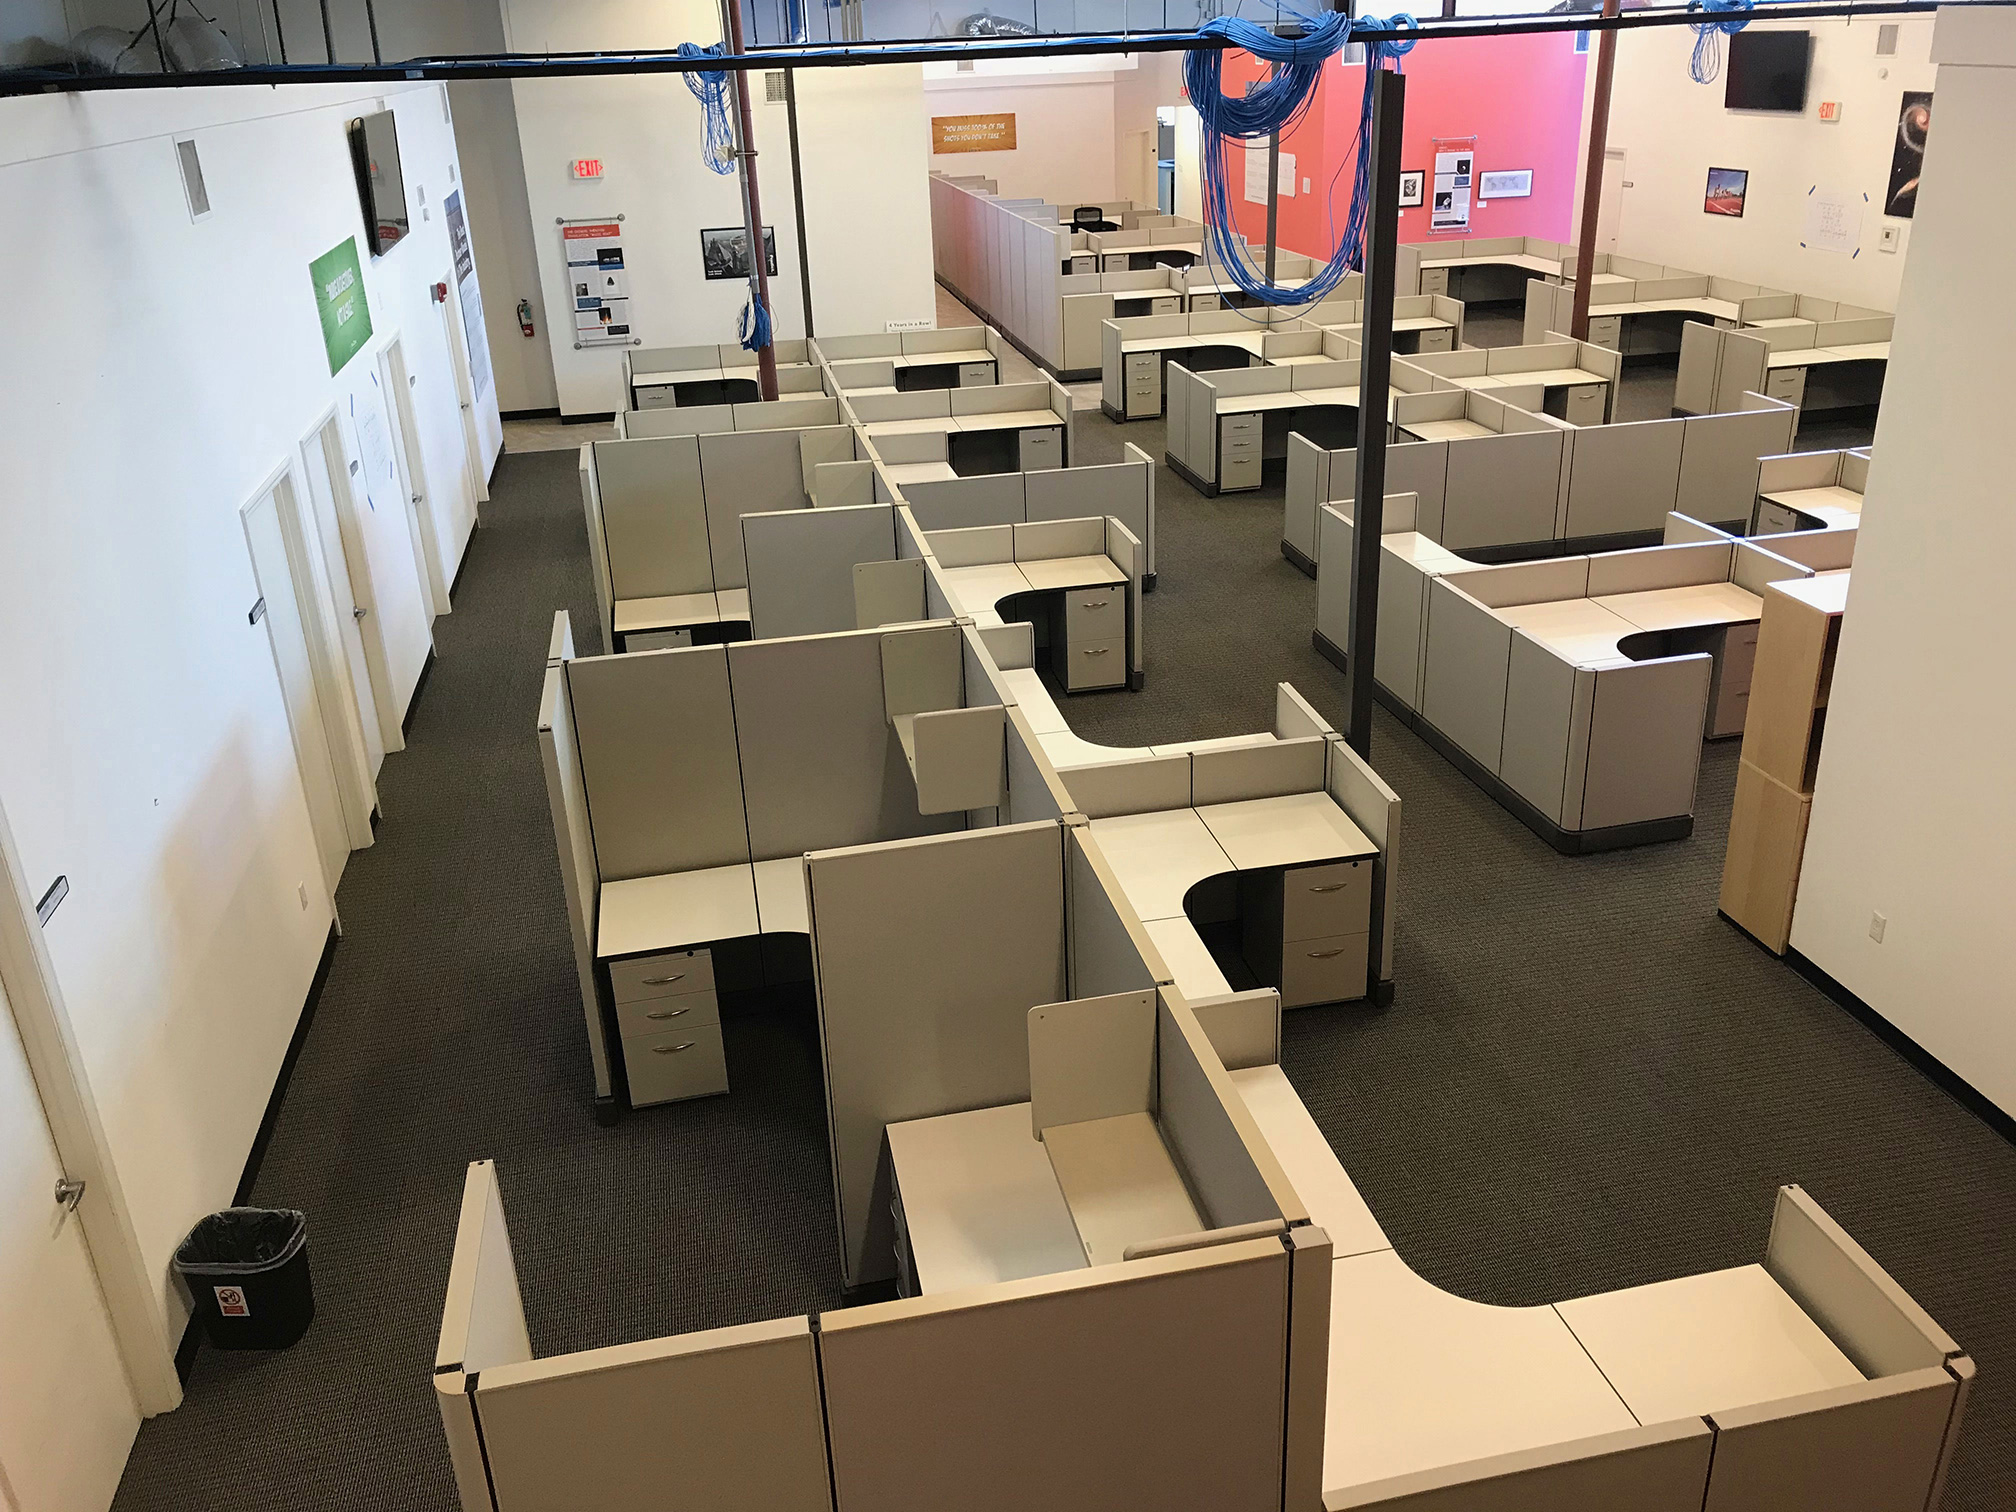 office-cubicles-for-sale-in-temple-terrace-florida-2.jpg